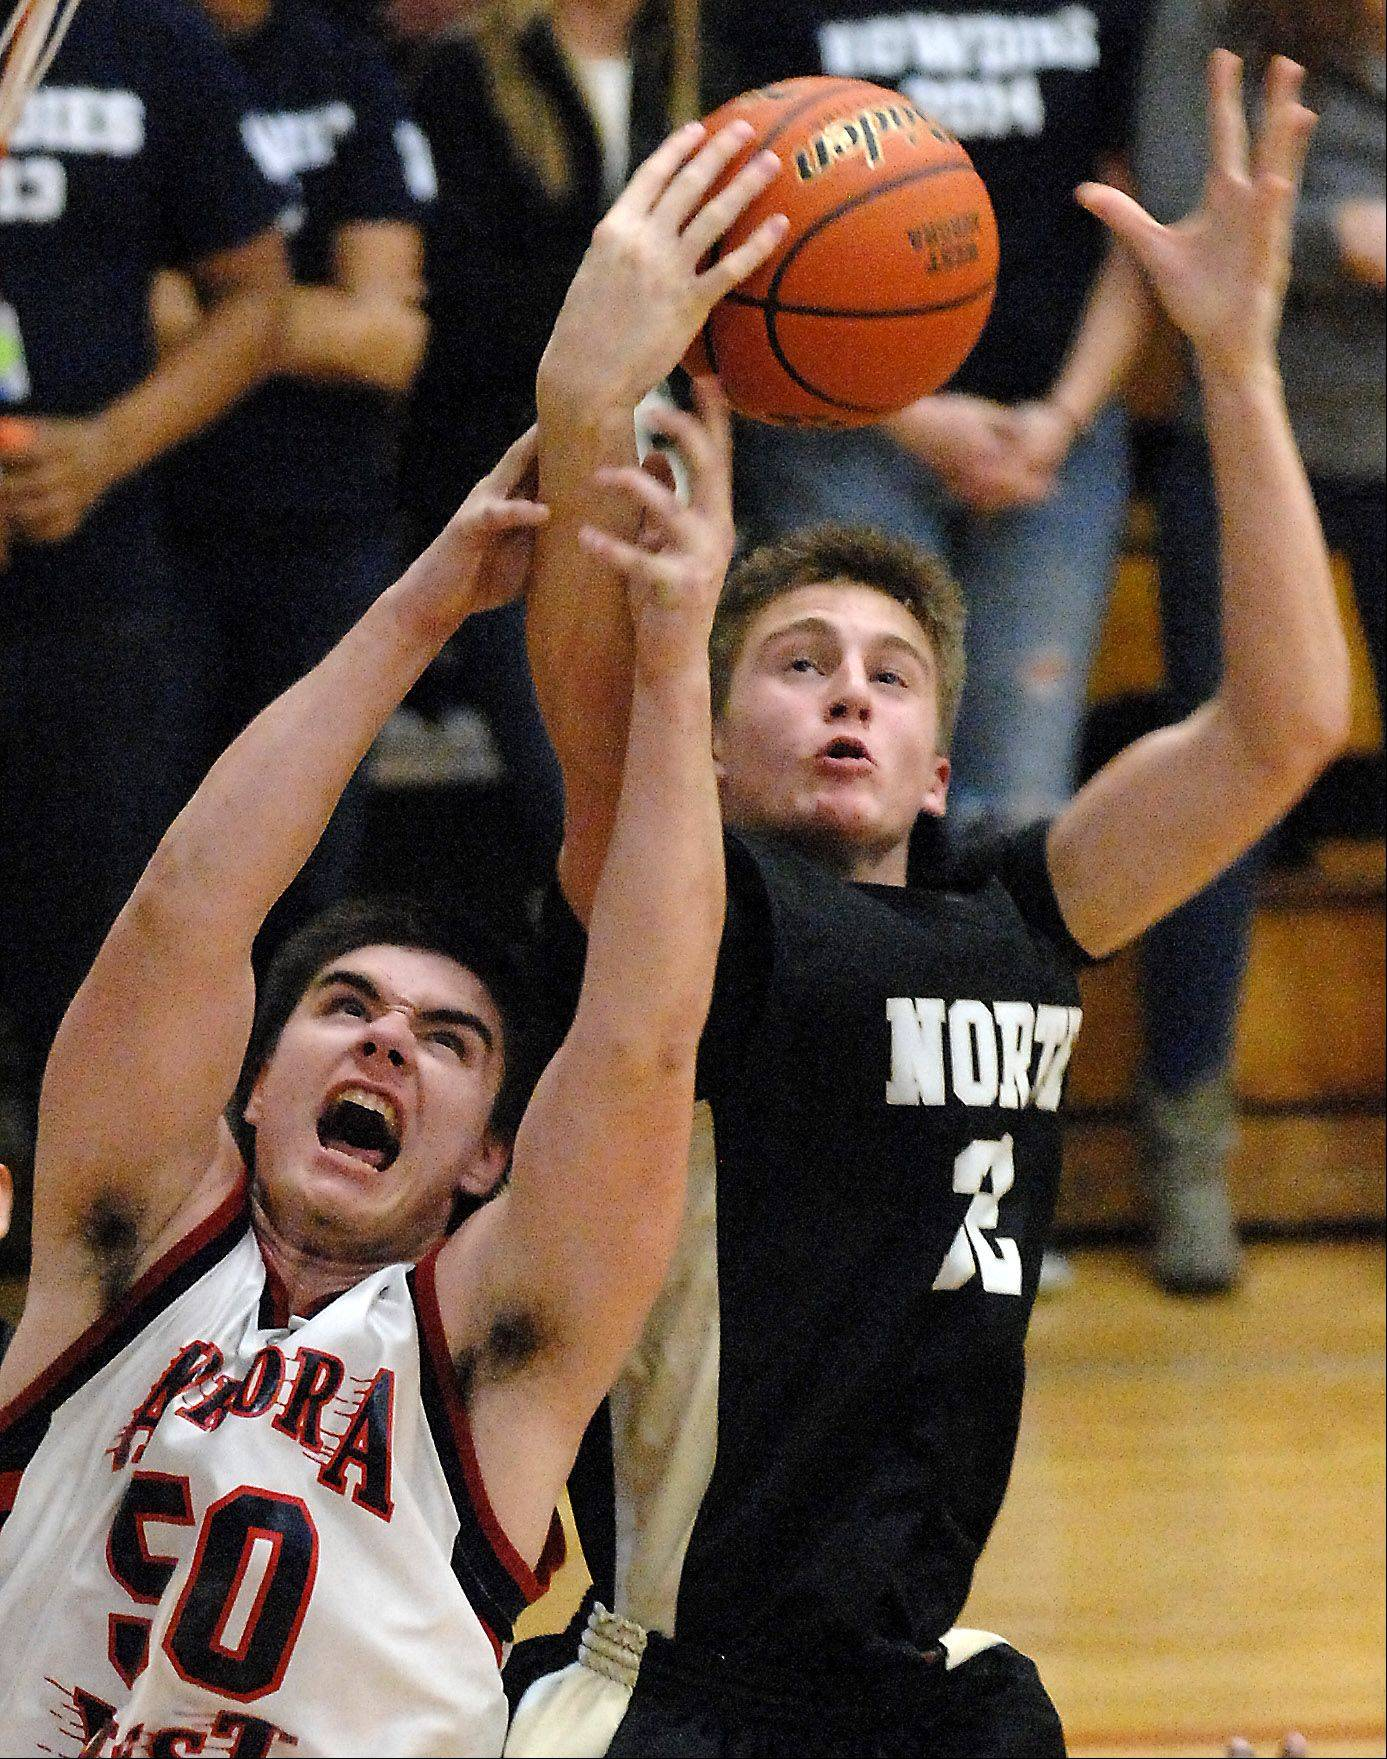 West Aurora's Chandler Thomas battles for a rebound with Glenbard North's Brett Gasiorowski during Friday's game at West Aurora.